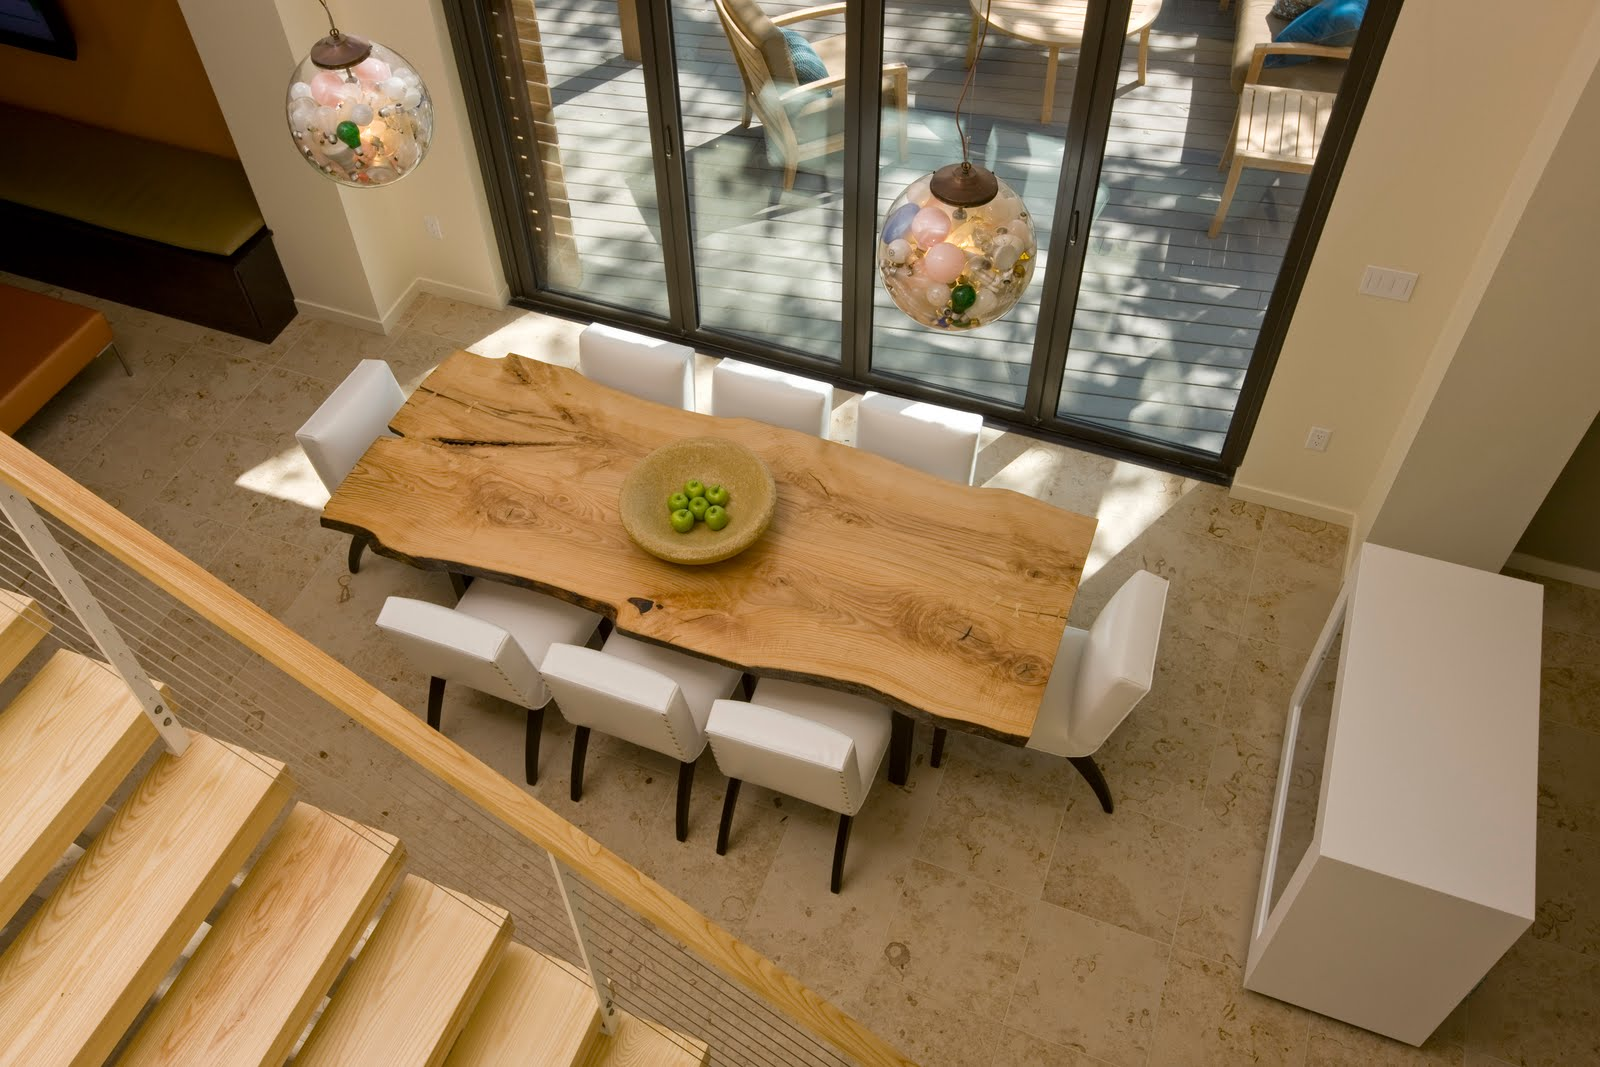 Beebee Grace Wood Tables White Chairs